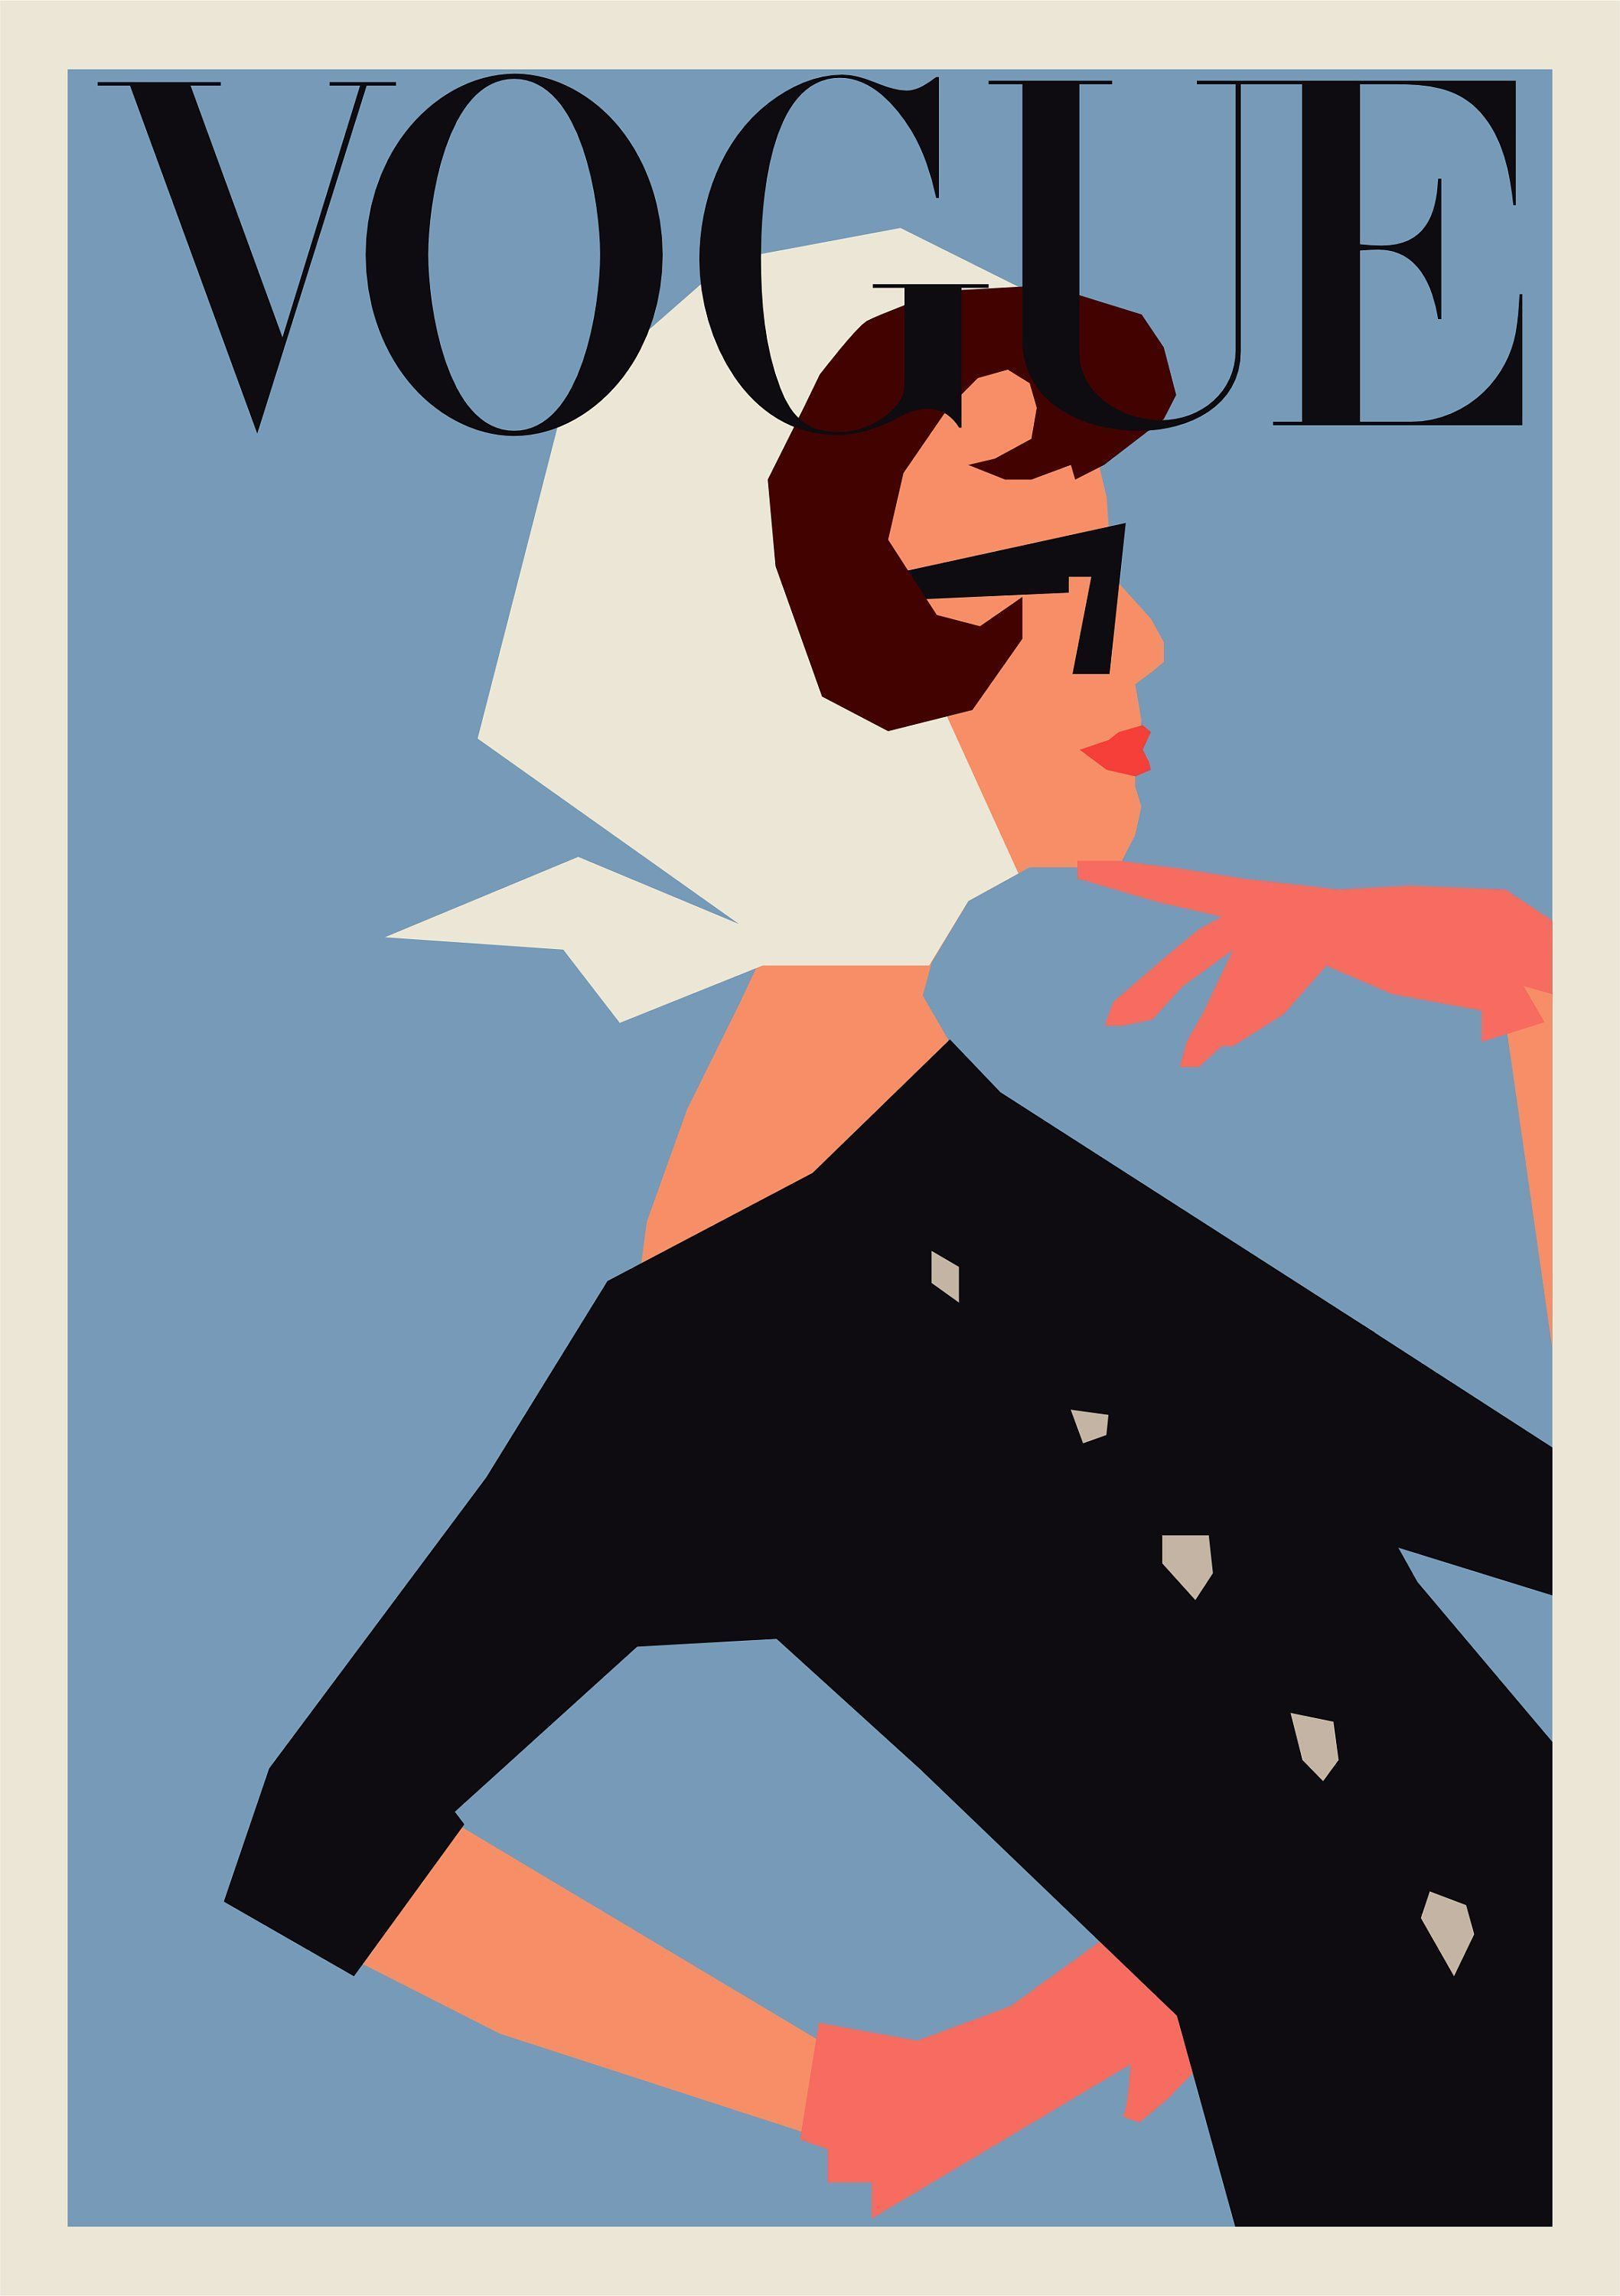 Shop Posters Art Prints Laptop Sleeves Phone Case And More Online Vogue Printed Poster In 2020 Vintage Poster Design Fashion Wall Art Vintage Posters Decor